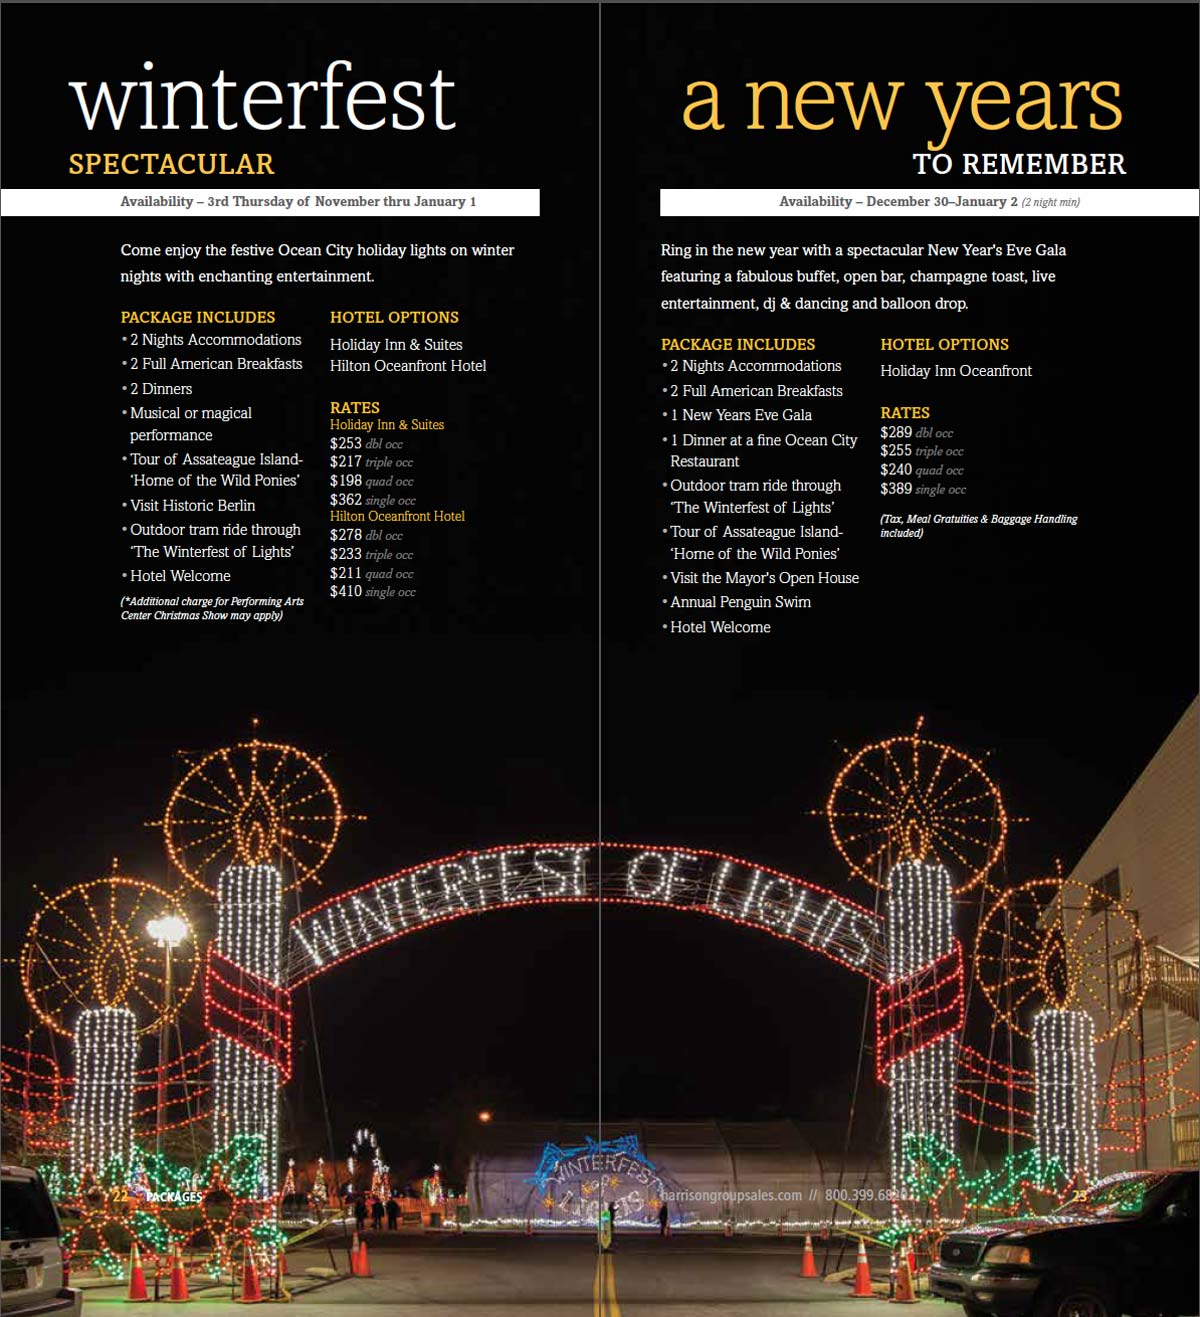 Harrison Group Sales Winterfest and New Years Eve packages